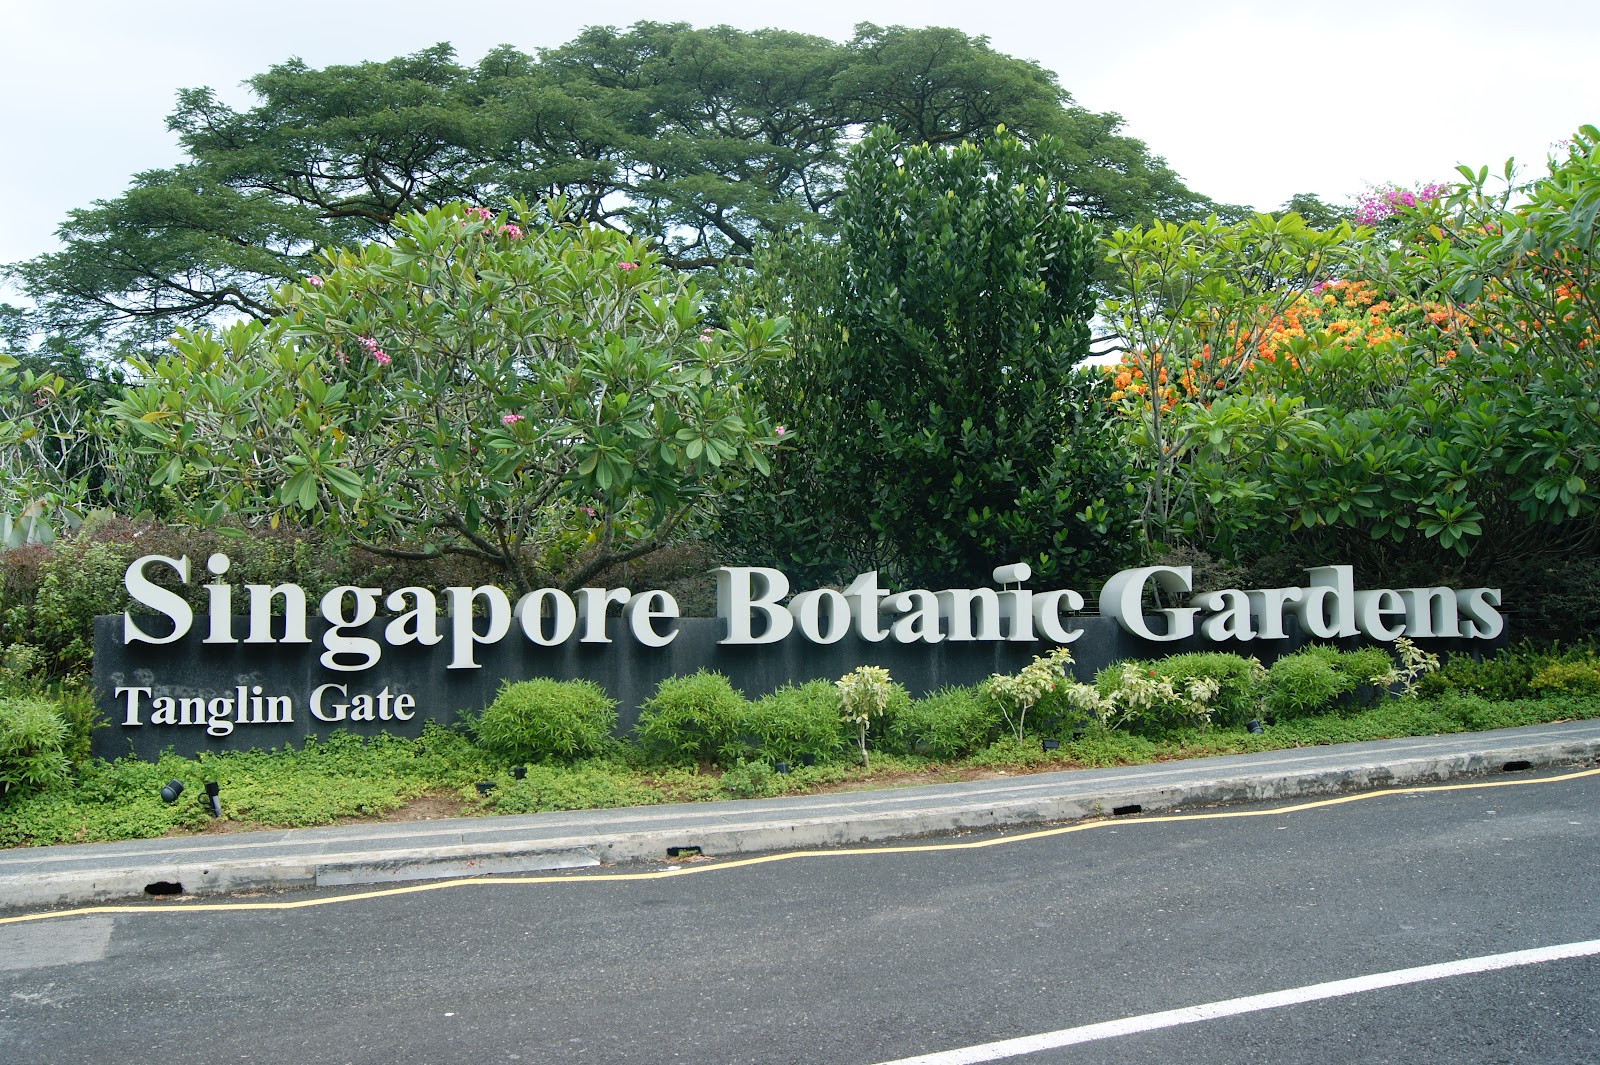 Numismatica banknote coin collecting unlisted for Au jardin singapore botanic gardens